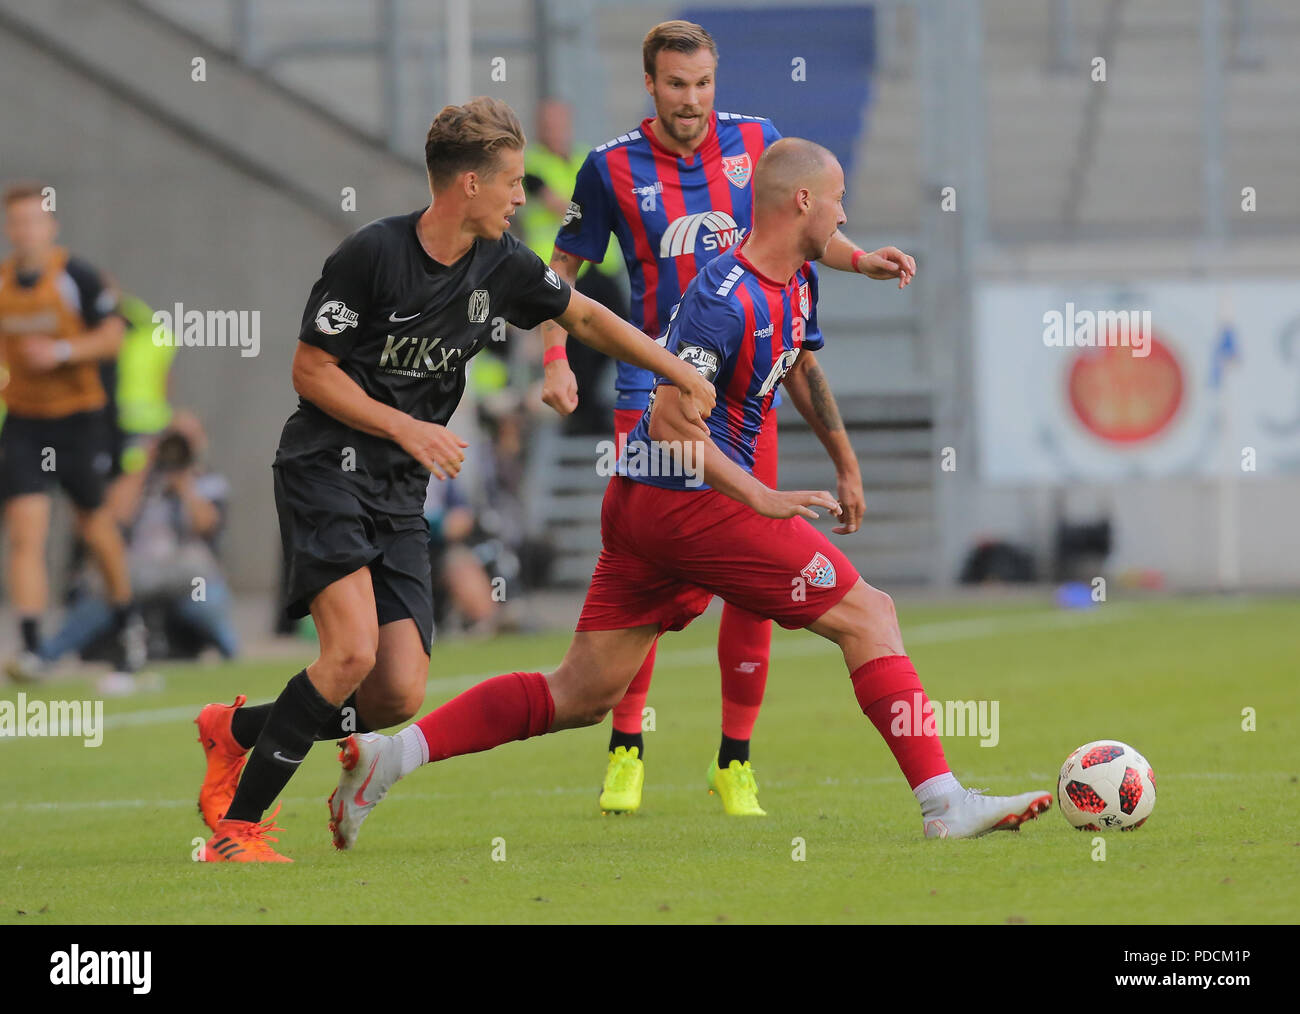 Duisburg, Germany. 08th Aug, 2018. Duisburg, Germany August 8 2018, 3rd league matchday 3, KFC Uerdingen 05 vs SV Meppen: Patrick Posipal (SVM), Tanju Oeztuerk (KFC) in competition. Credit: Juergen Schwarz/Alamy Live News - Stock Image